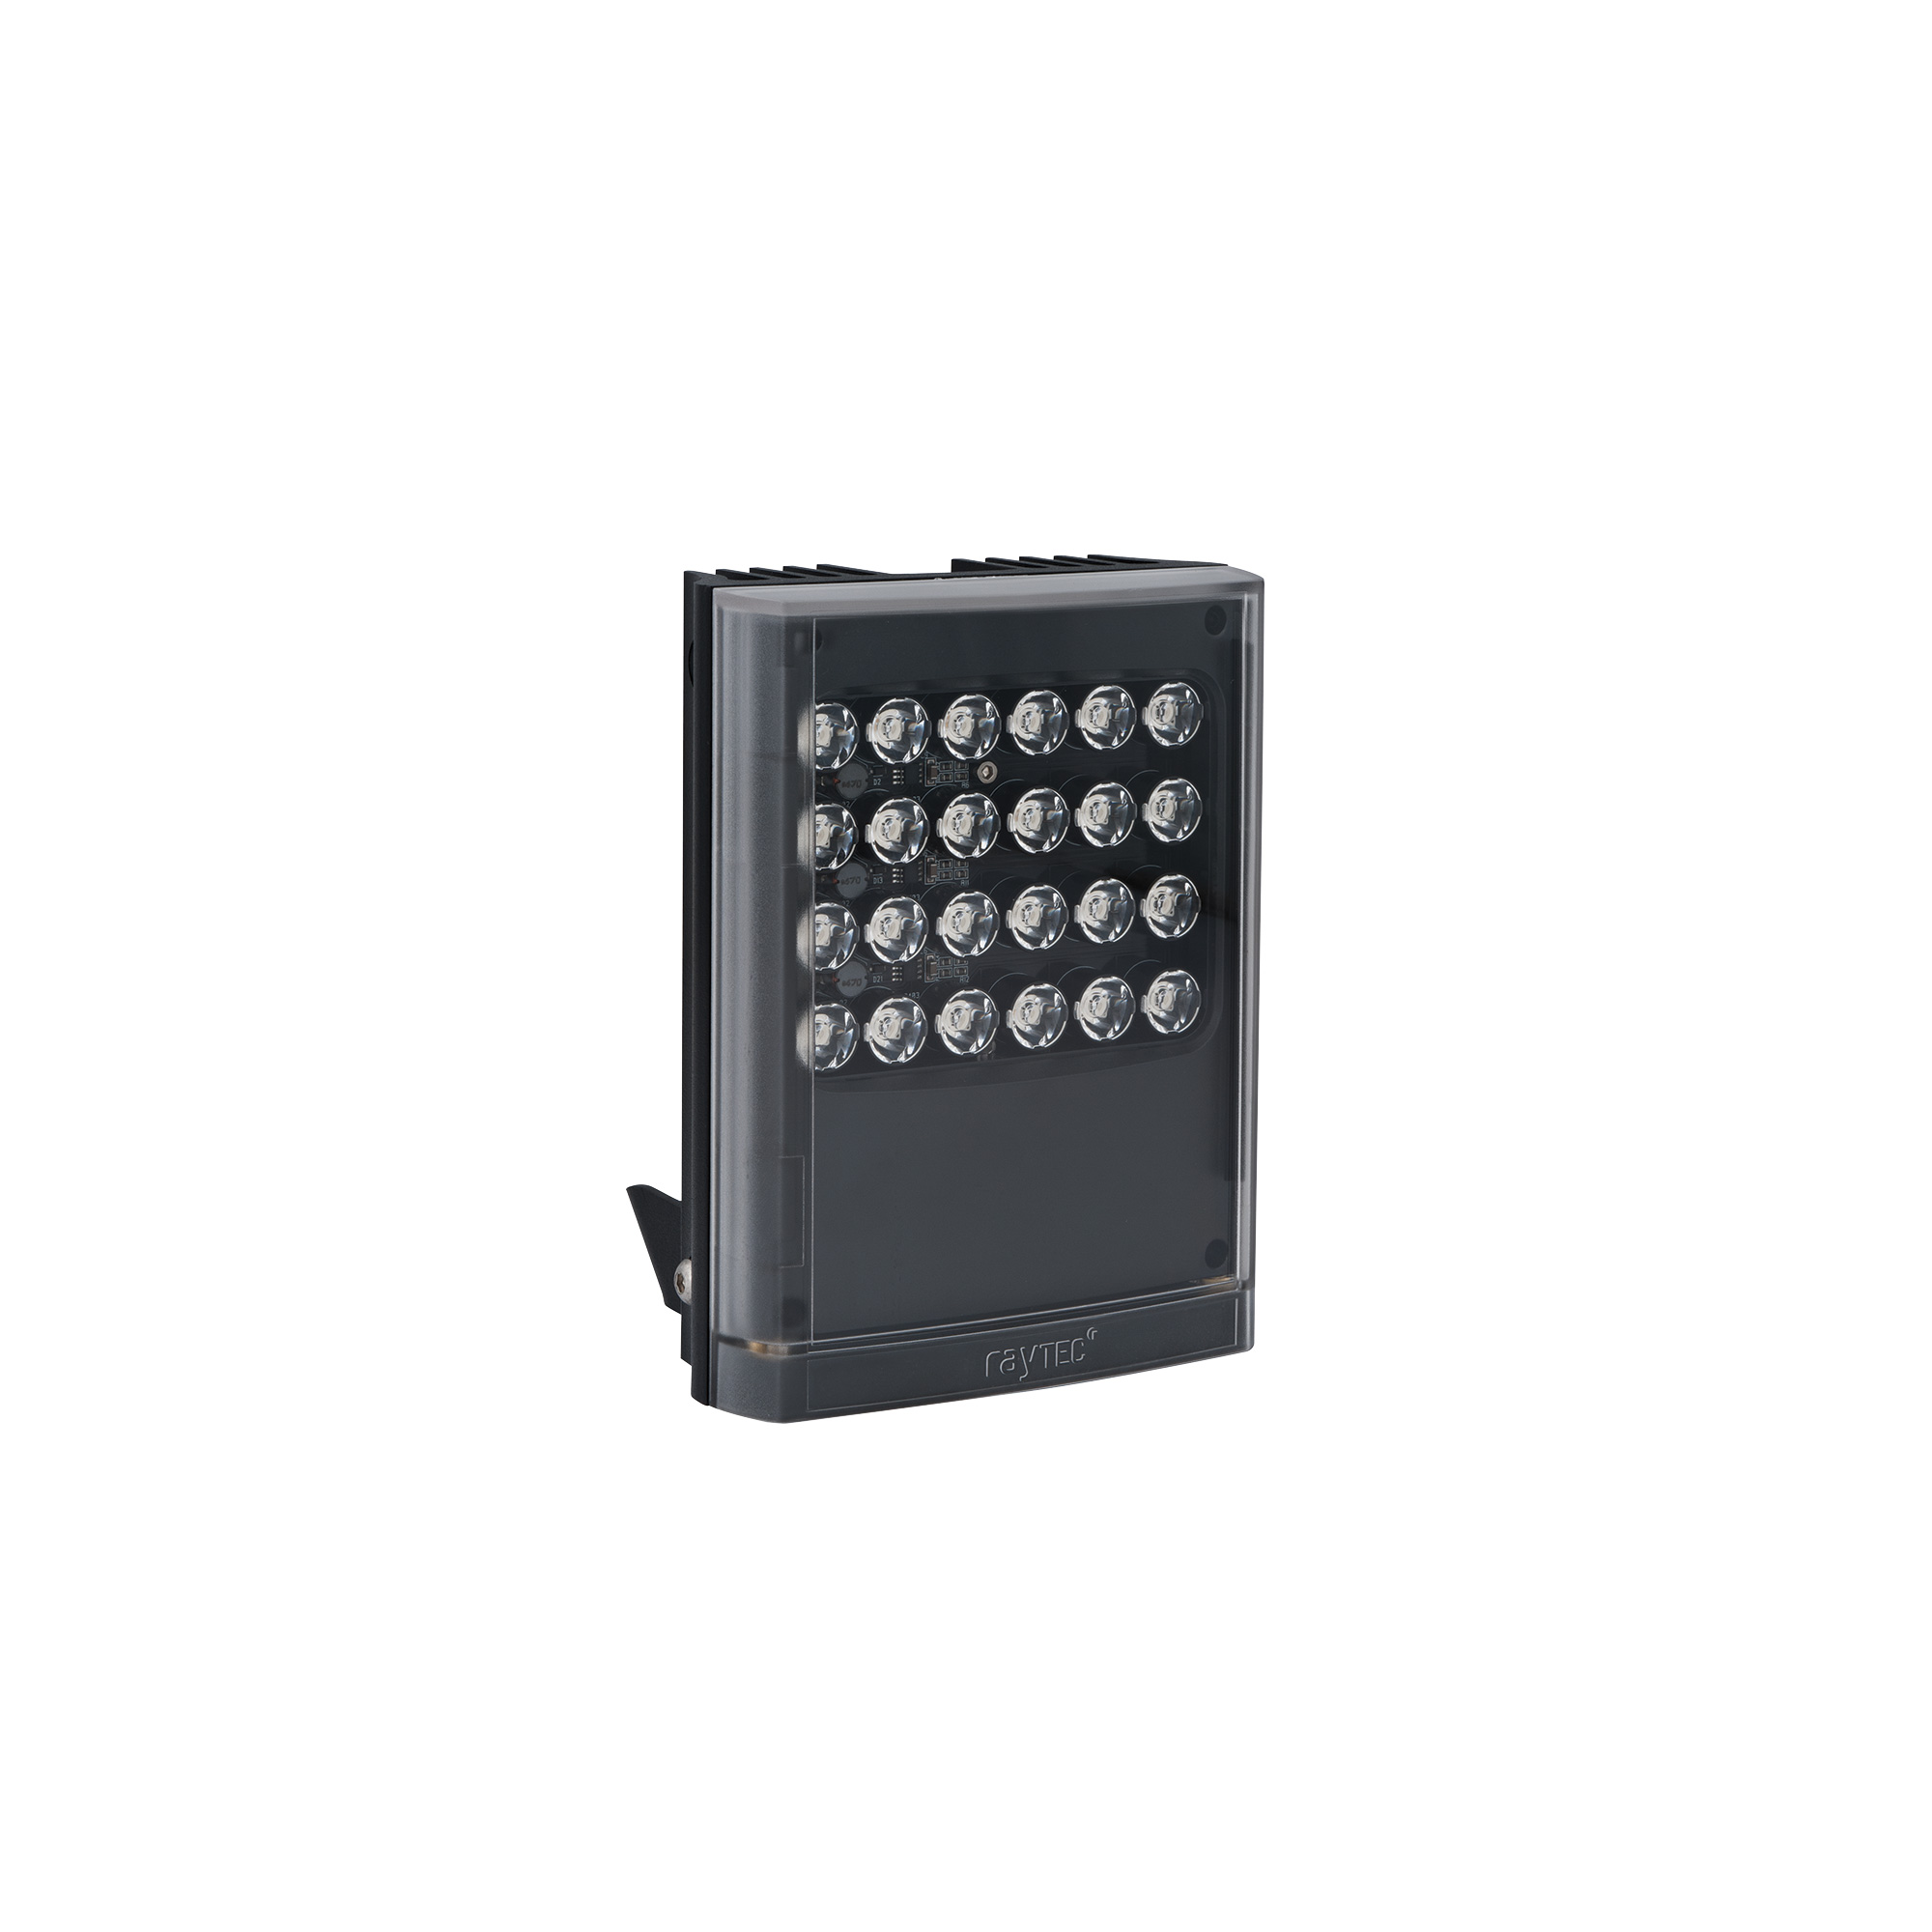 PSTR-i24-HV High Intensity Pulsed Infra-Red Illuminator